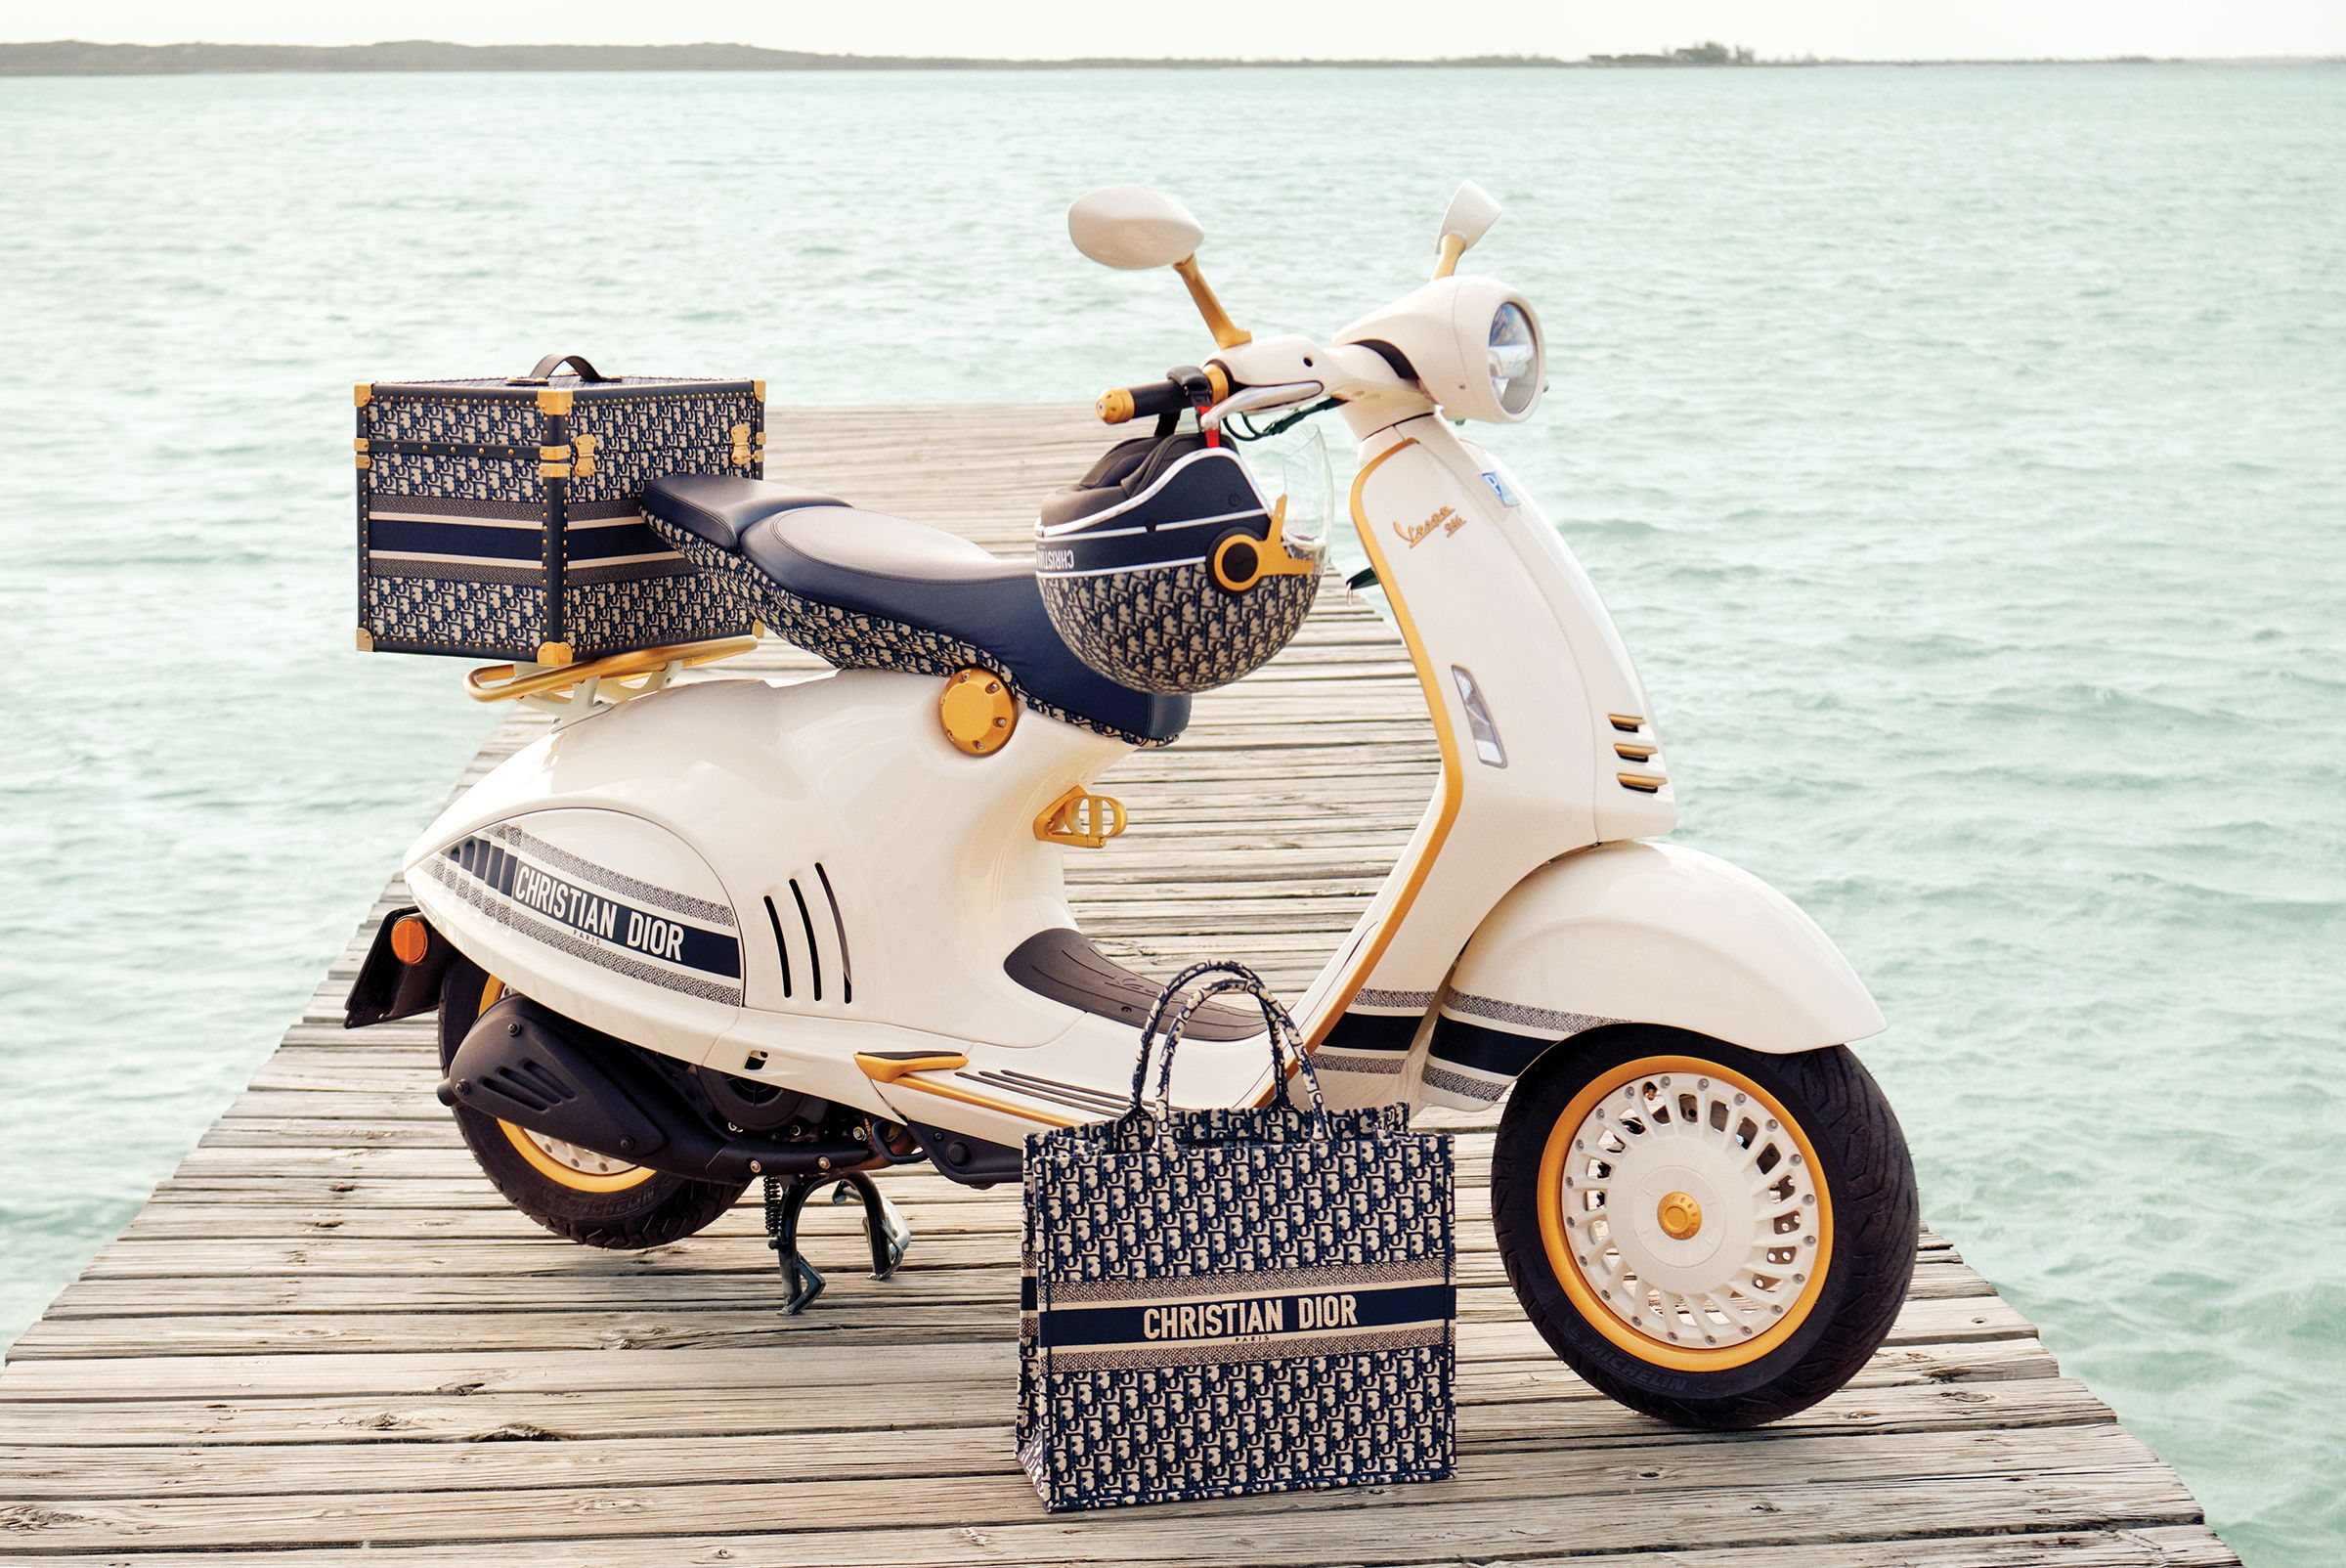 The most fashionable and stylish Vespa scooters ever made